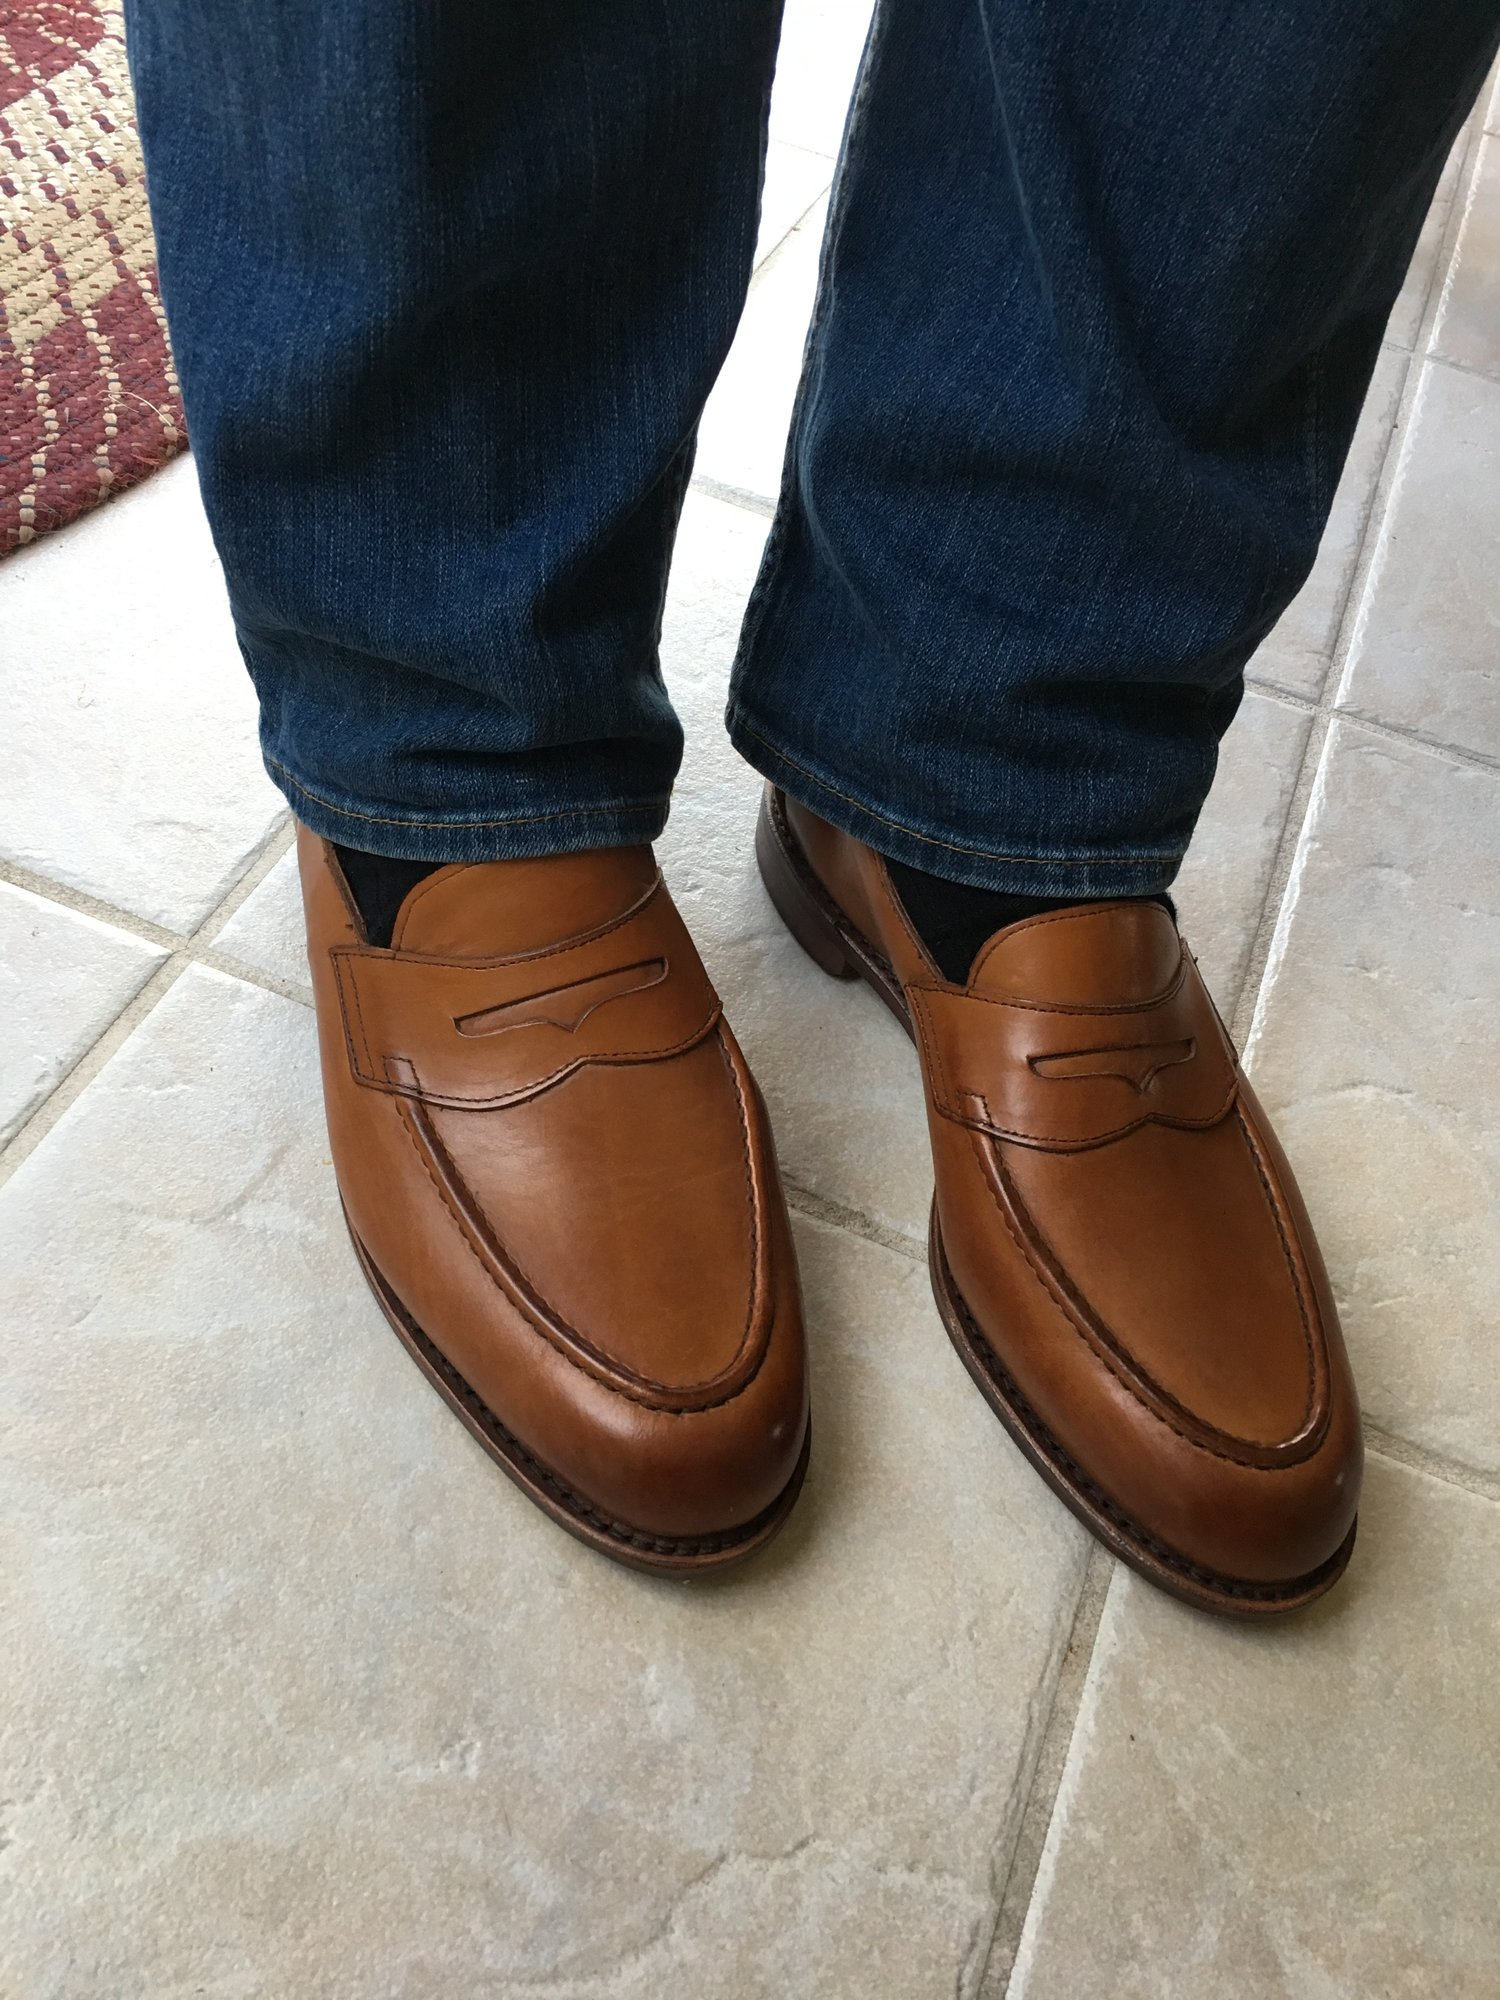 ted baker shoes styleforum forums definition